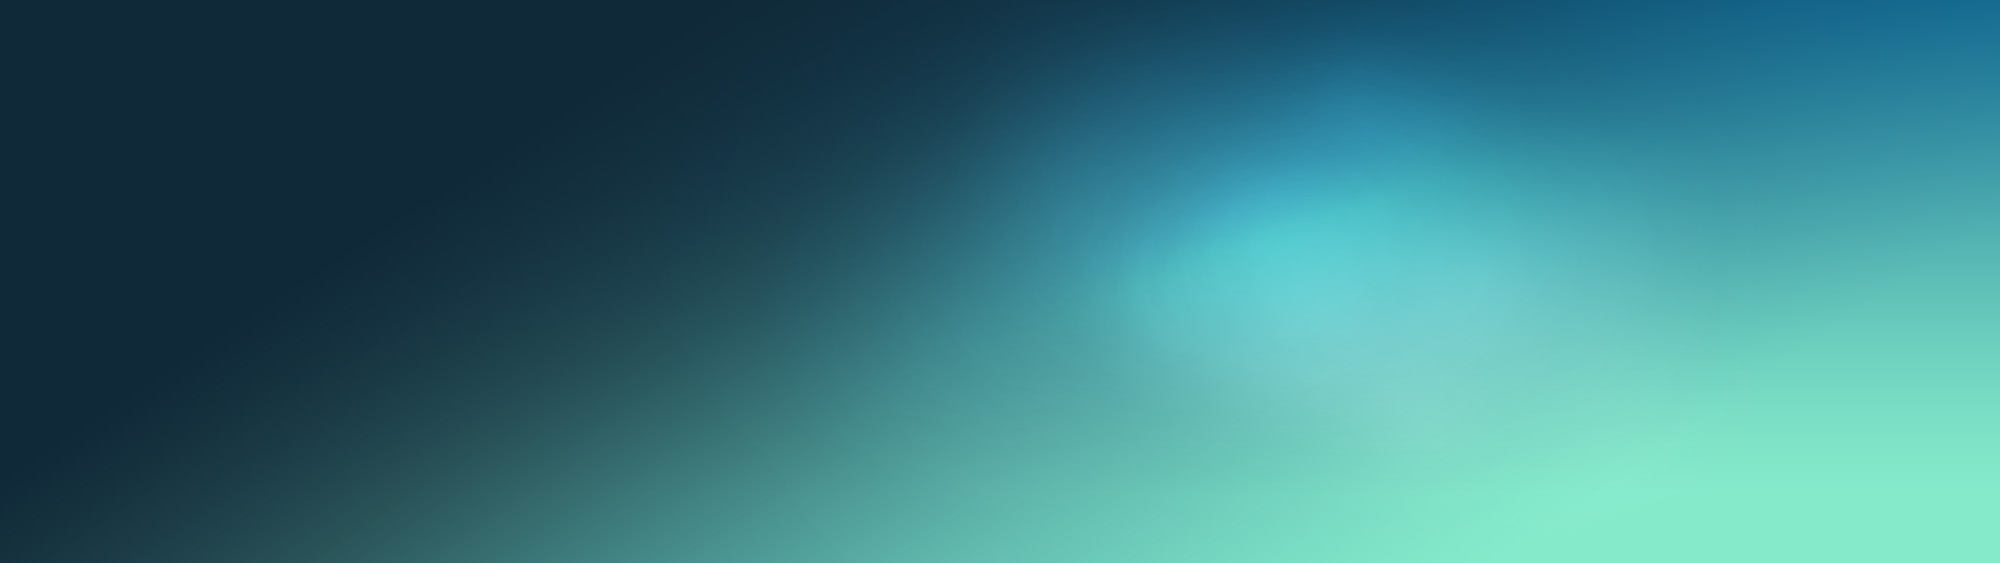 Background 4